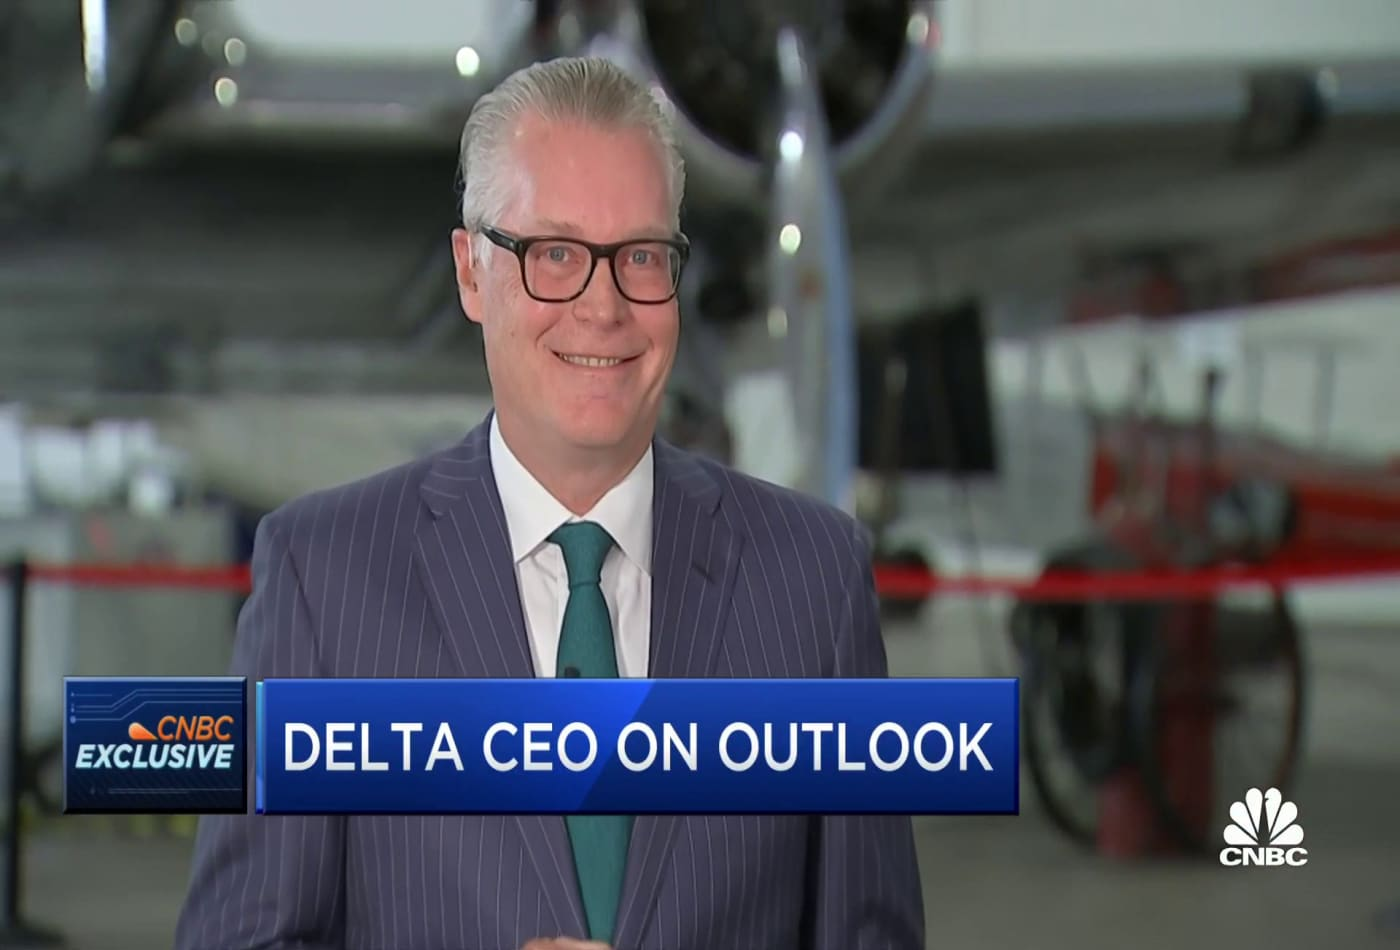 Watch CNBC's full interview with Delta CEO on first-quarter earnings, outlook and more